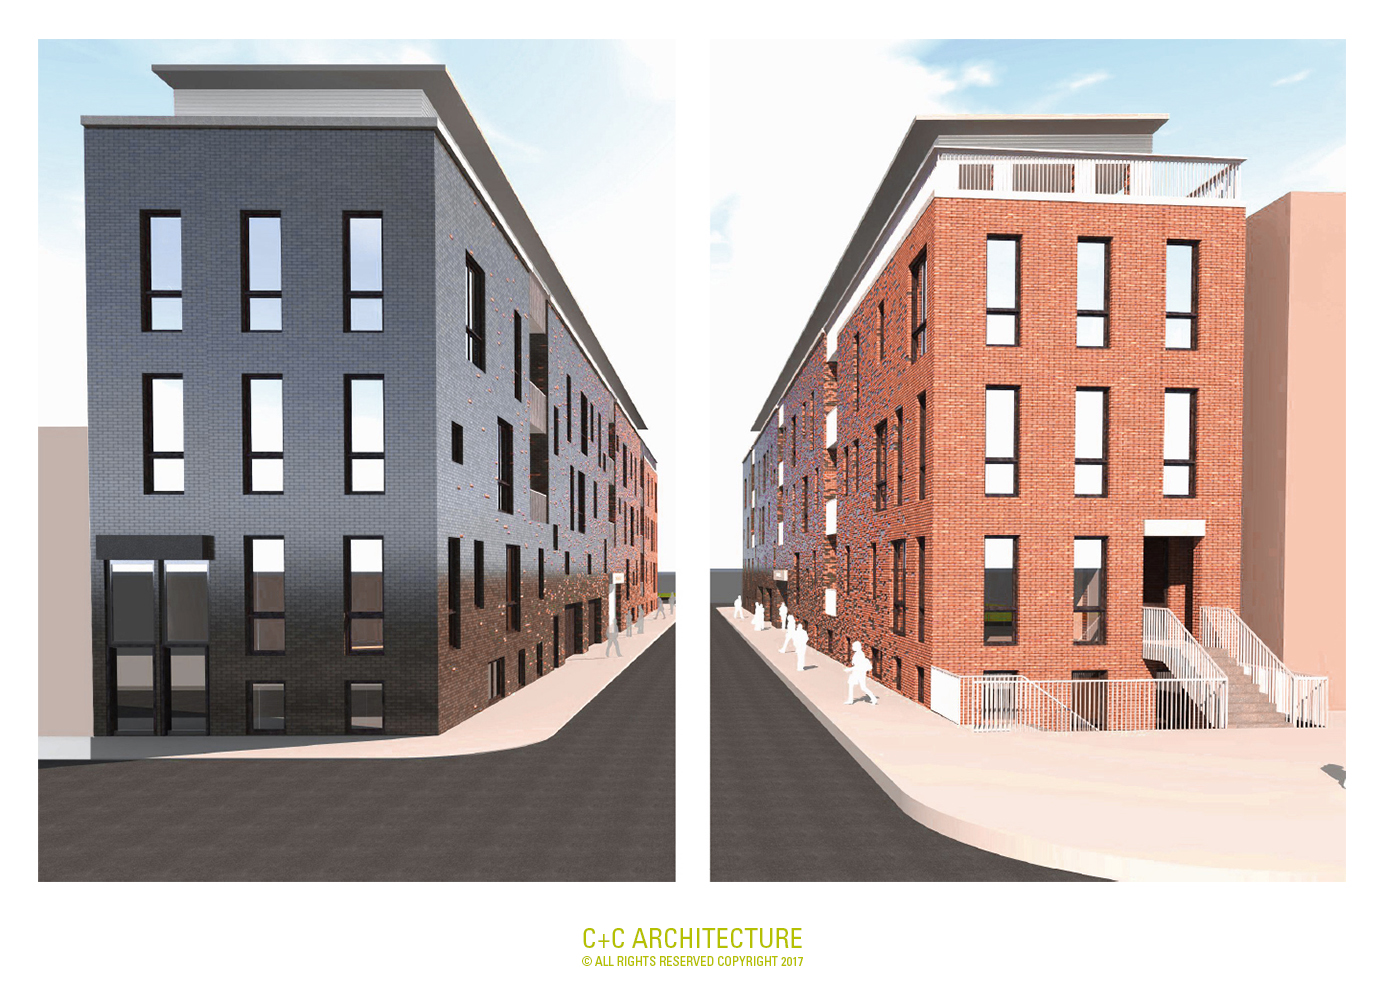 LEFT: Beecher Street Façade within the Lincoln Park Redevelopment Plan. RIGHT: Lincoln Park façade within the Lincoln Park Historic District.